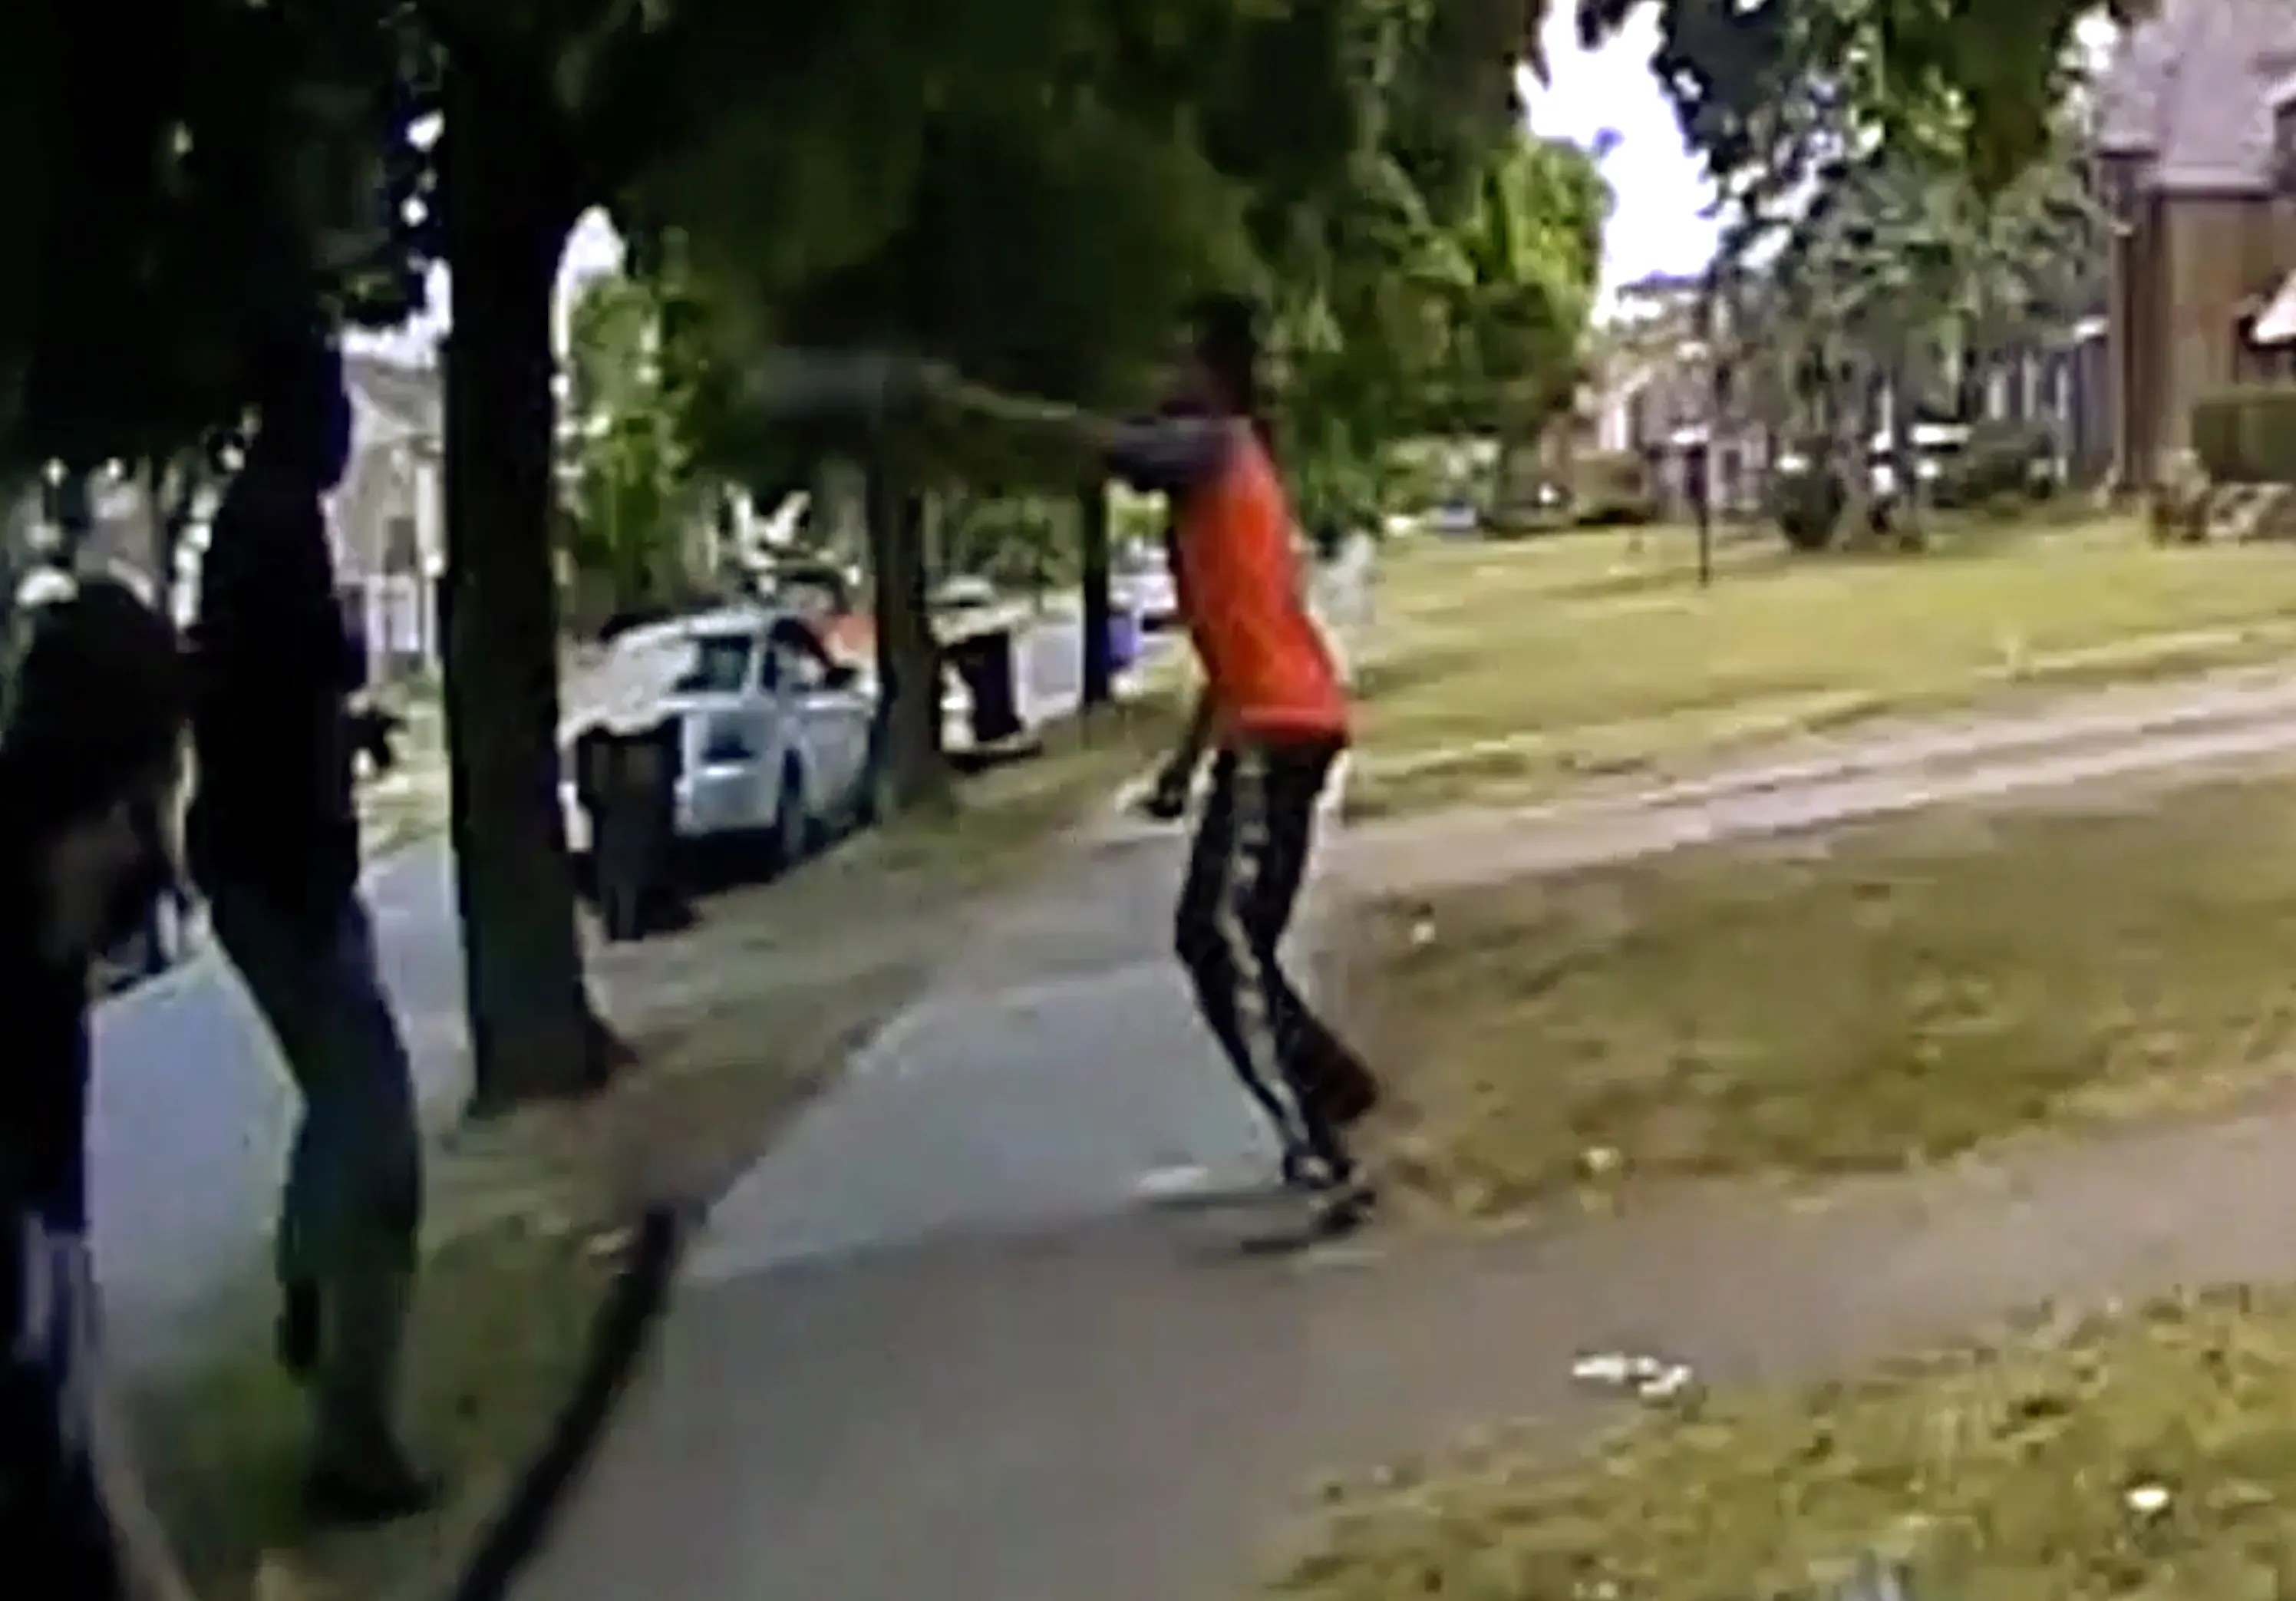 Detroit in uproar over Hakim Littleton police shooting when video shows he pulled gun on police